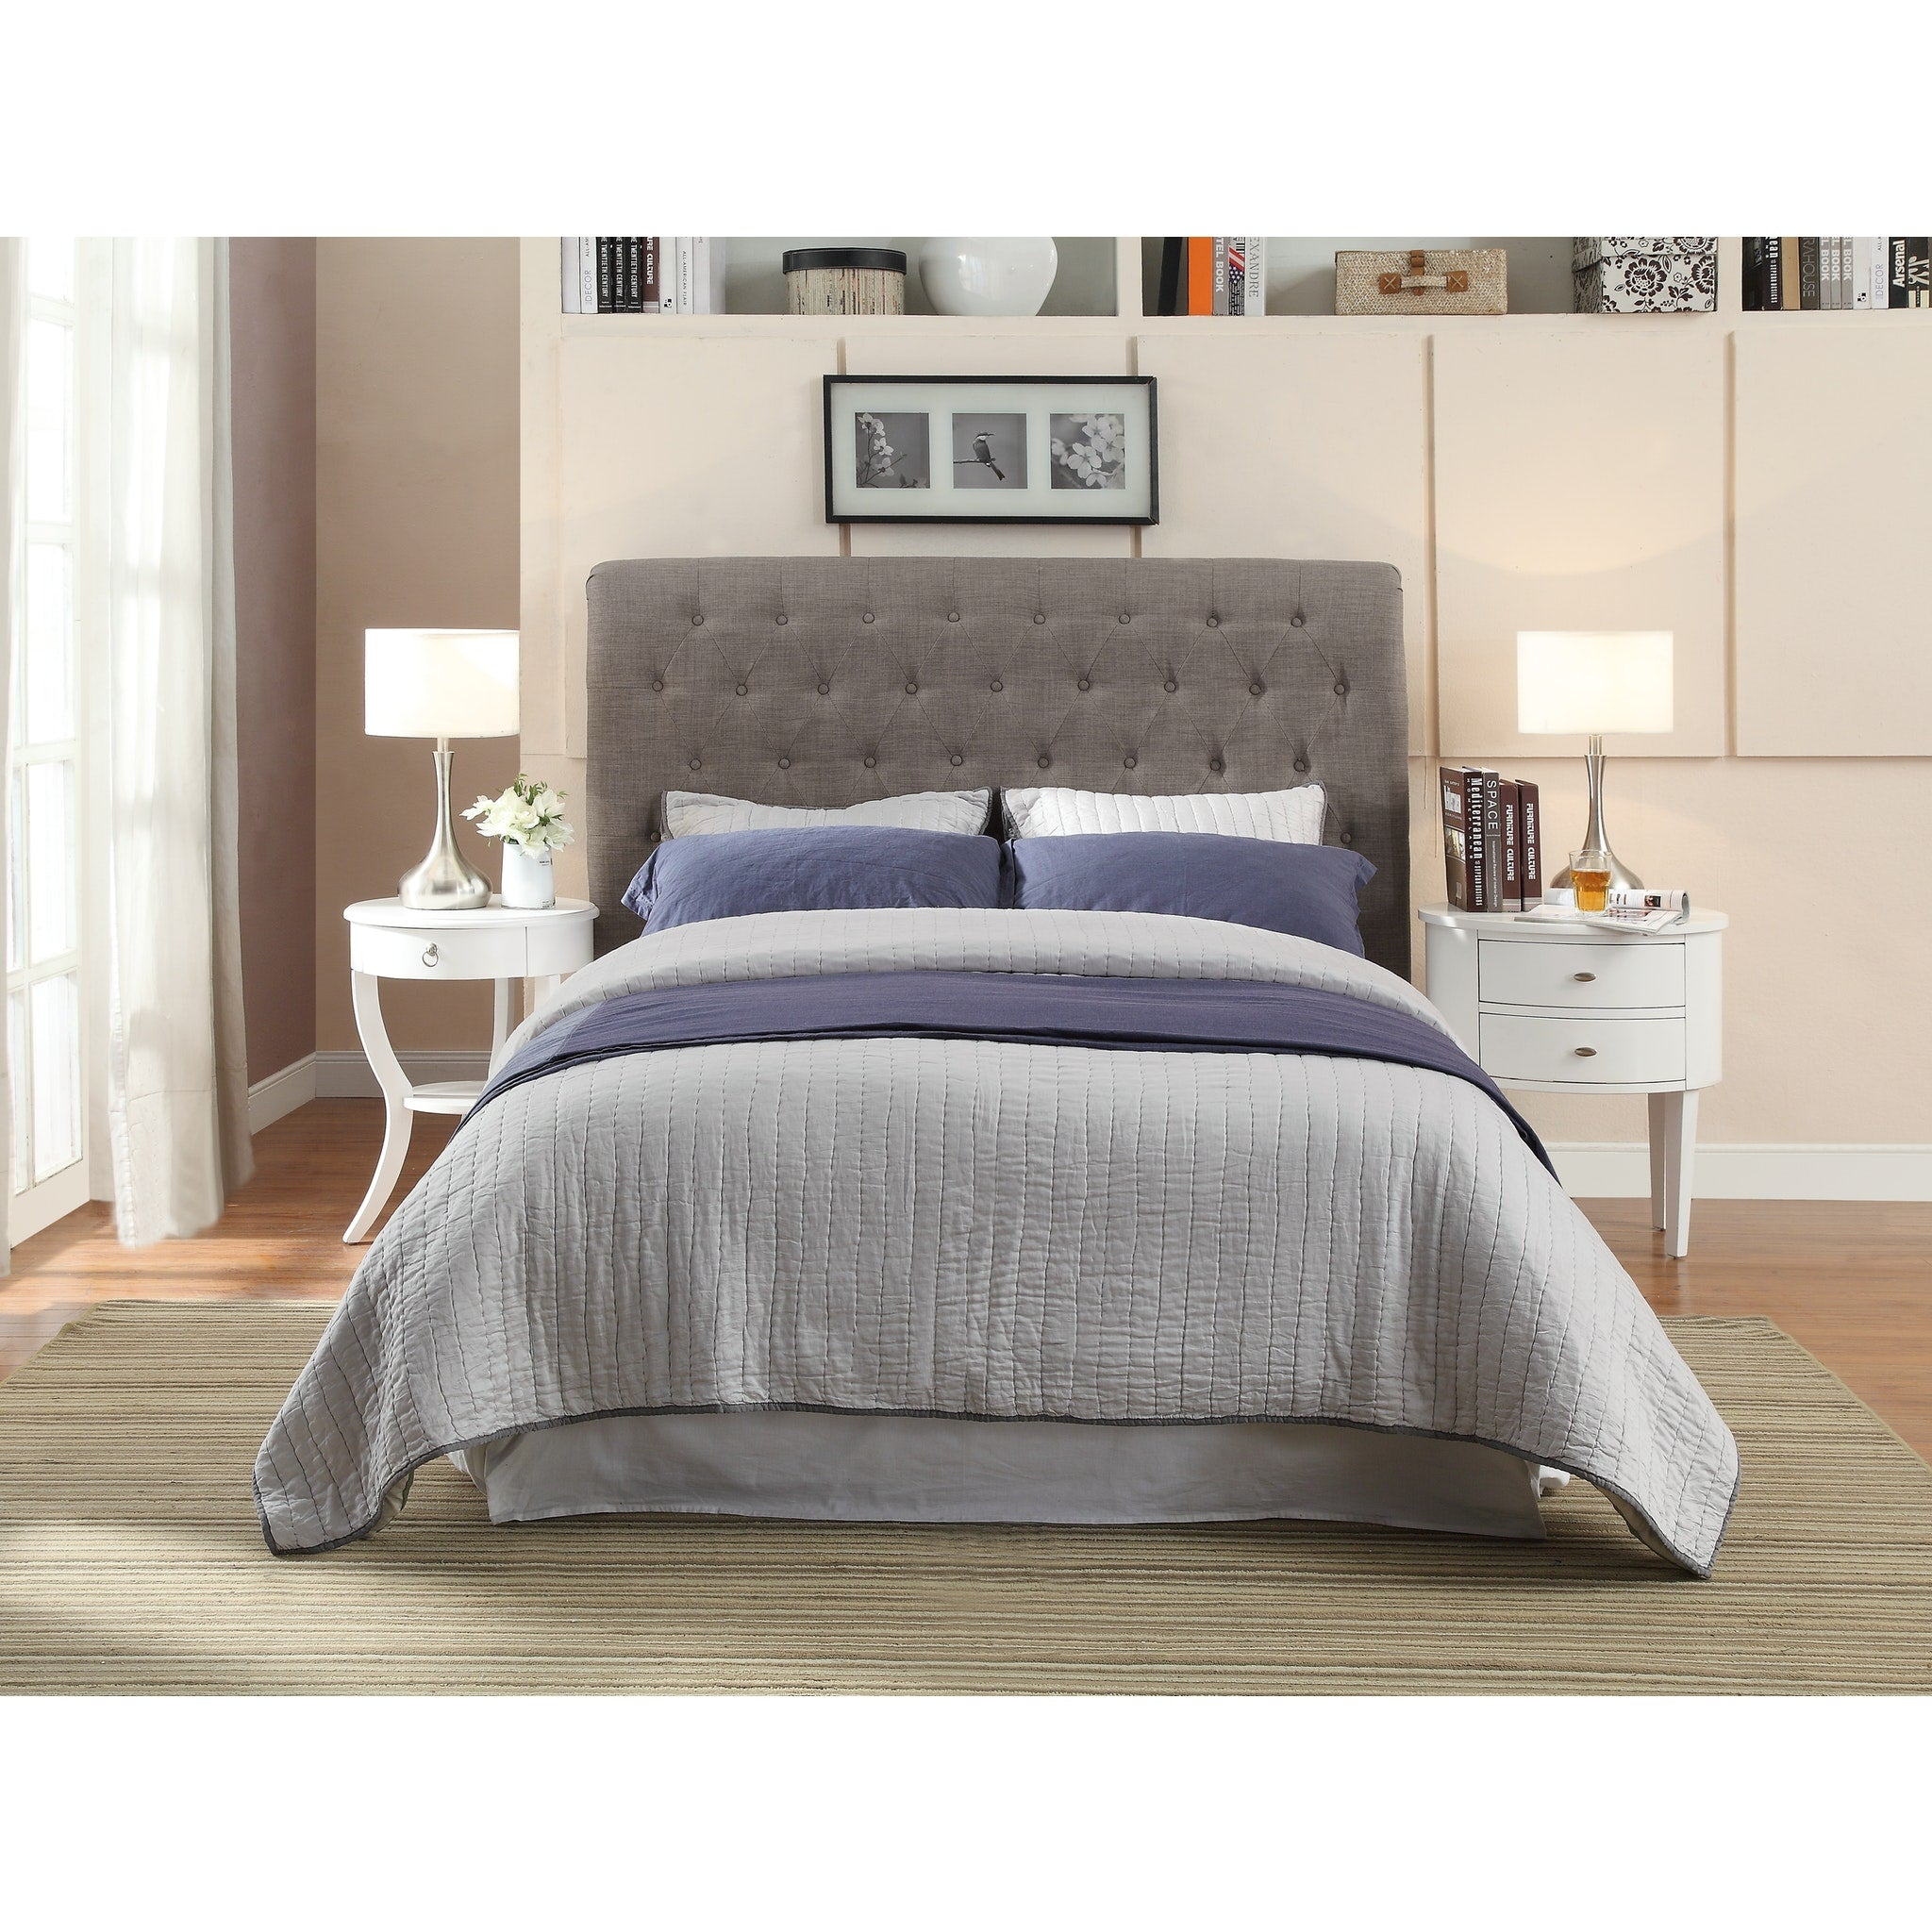 Royal Queen-size Tufted Platform Bed